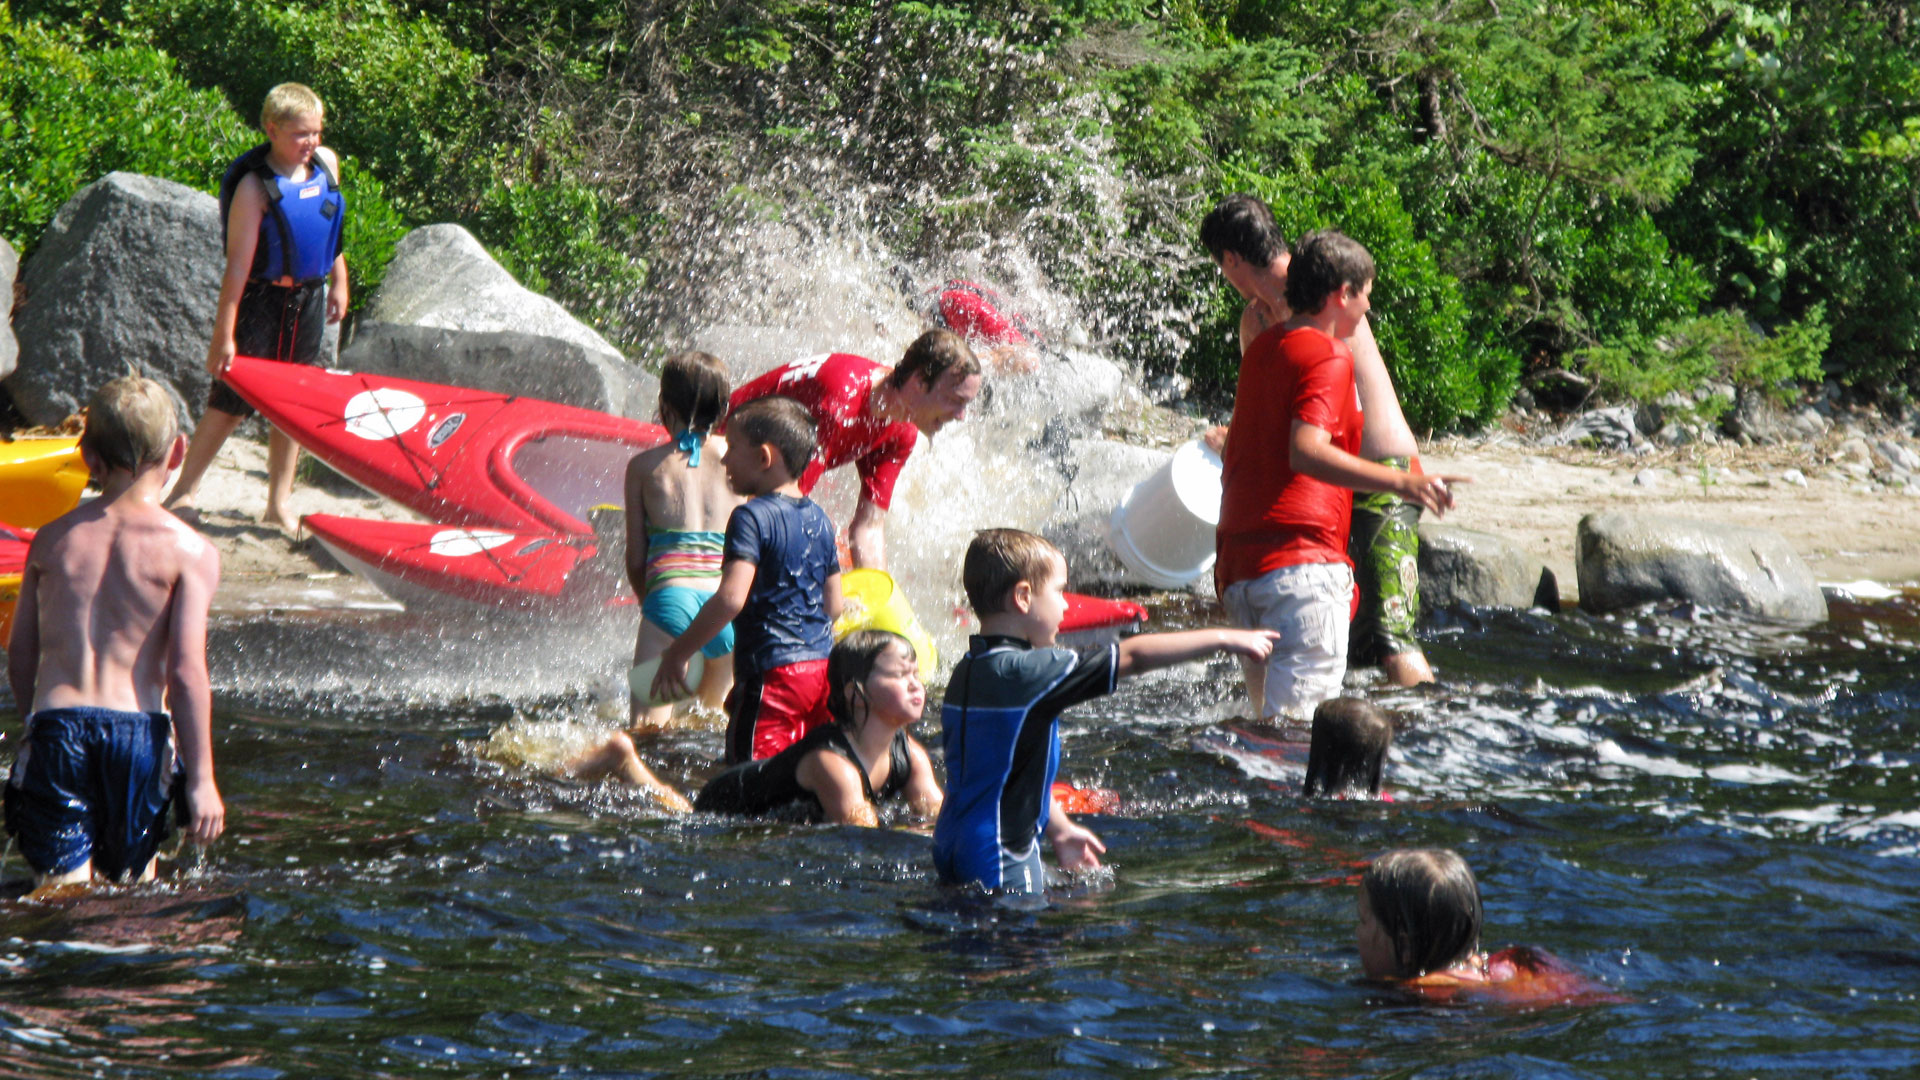 Municipality of Shelburne – Summer Fun Guide 2015